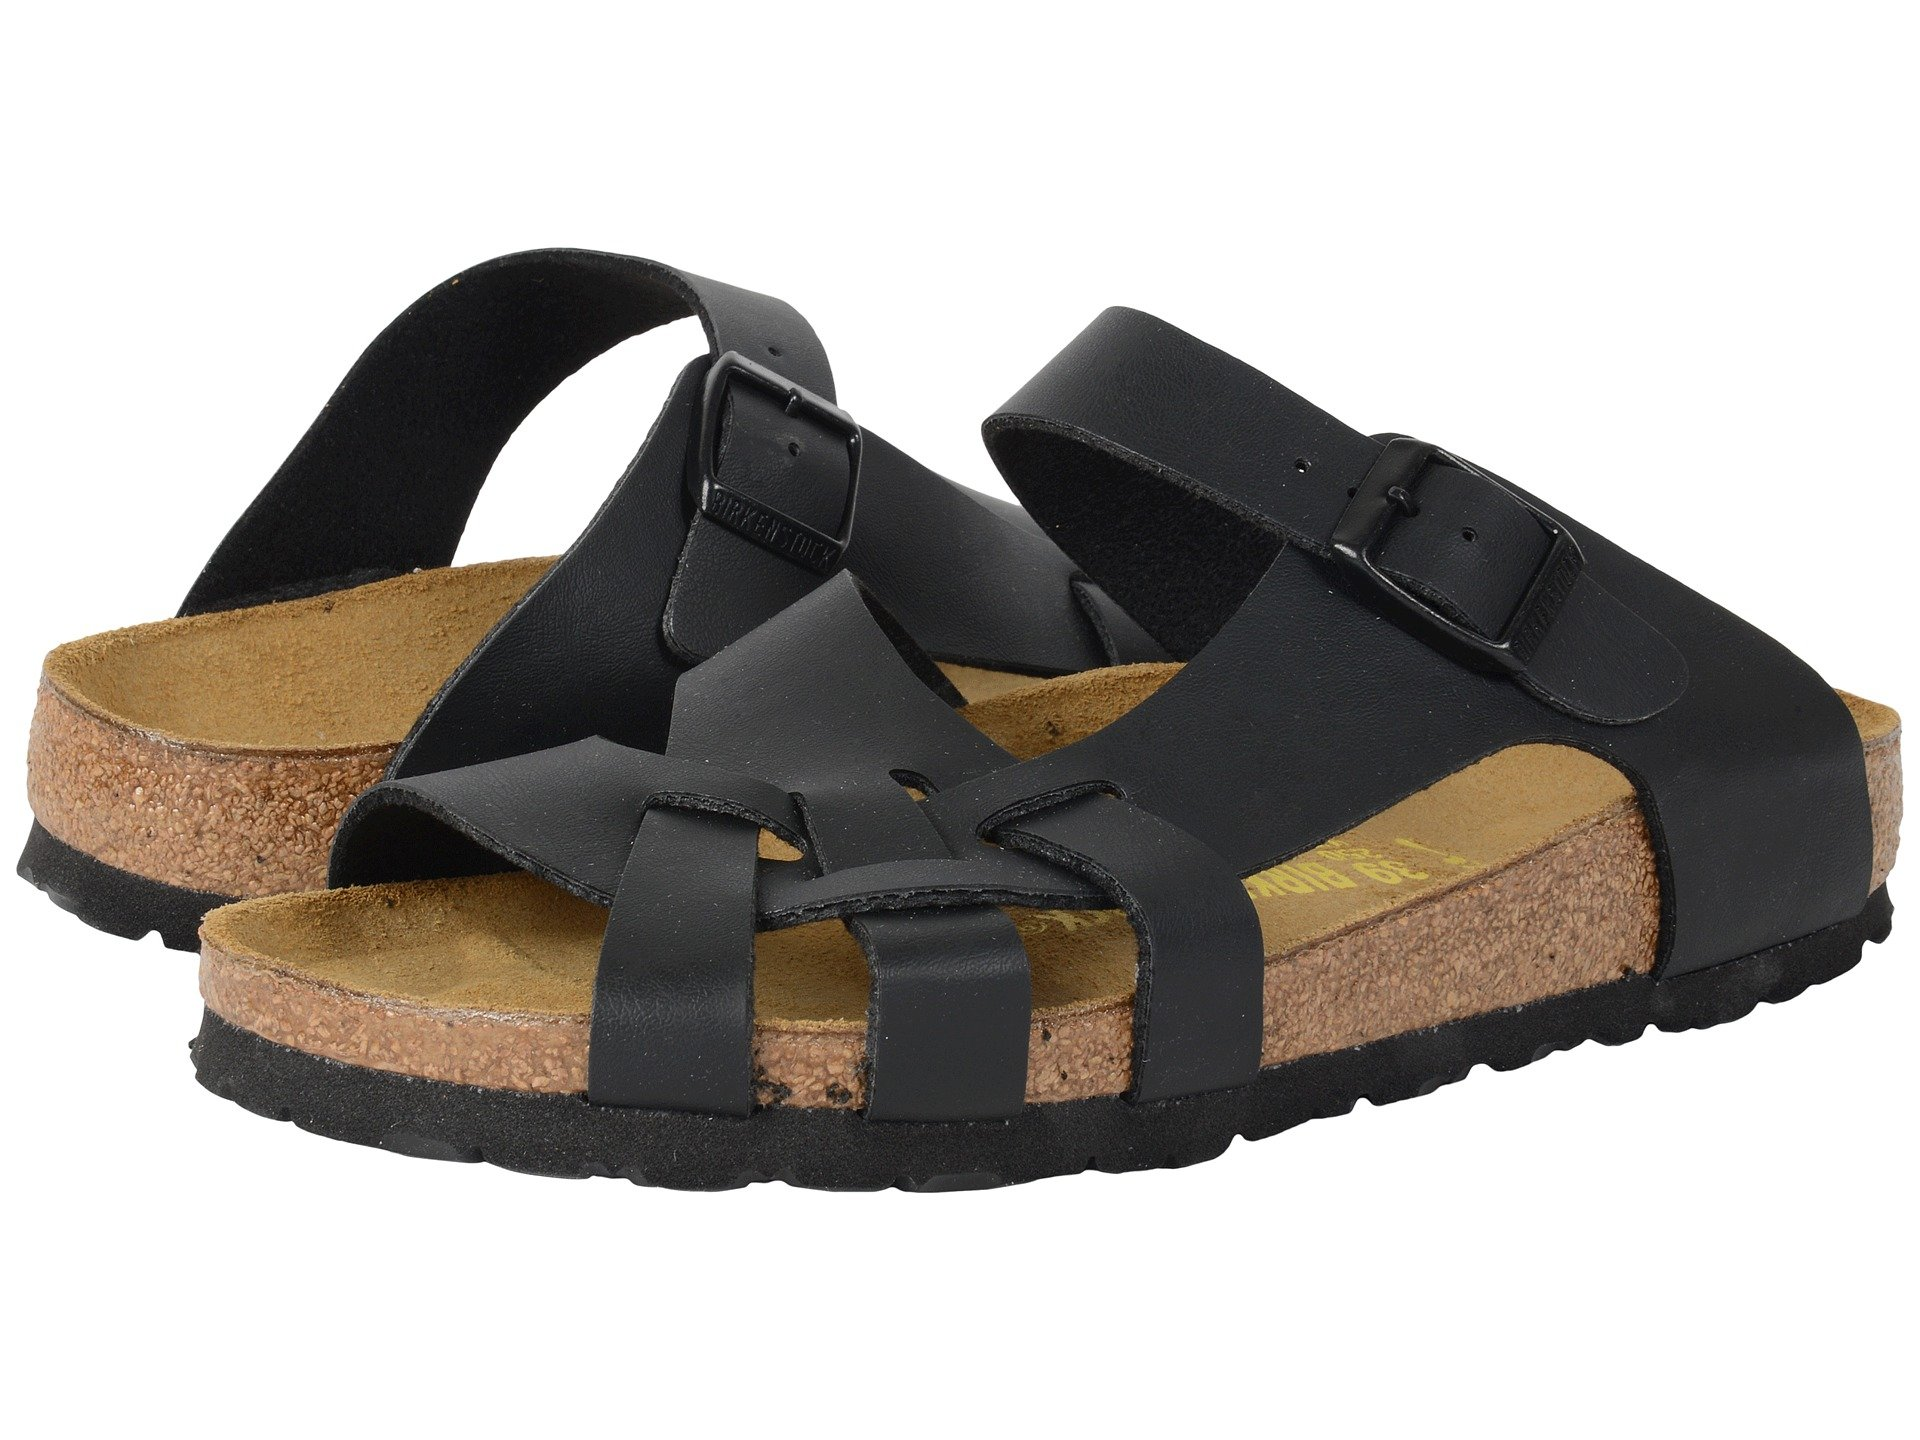 8c10334e1294 Men s Birkenstock Shoes + FREE SHIPPING